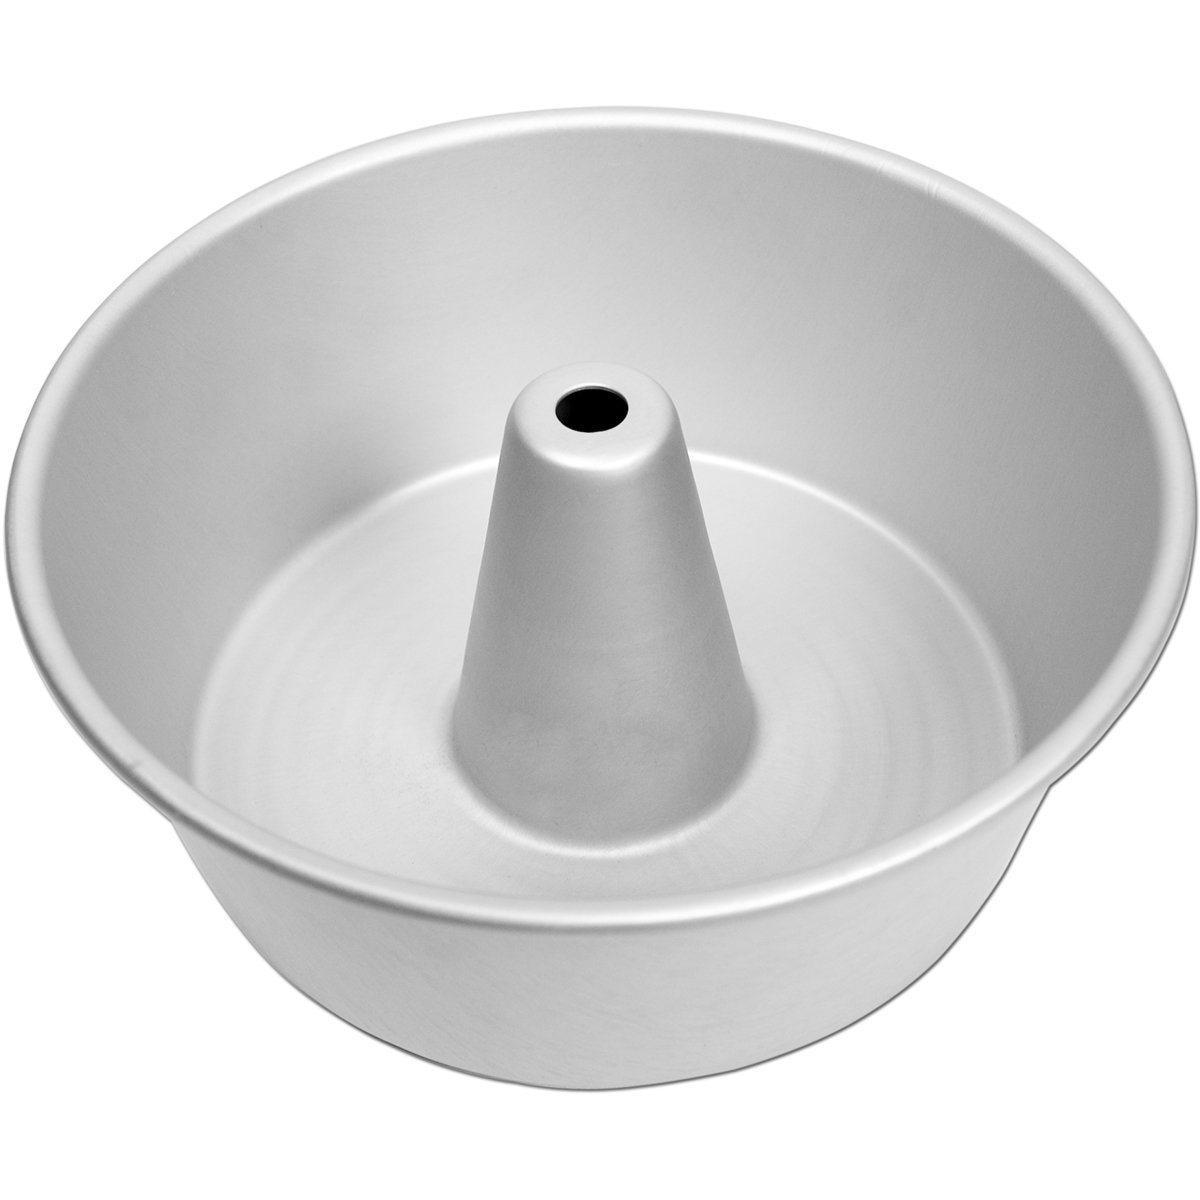 Fat Daddio's Anodized Aluminum 10-Inch Angel Food Cake Pan Fat Daddio's PAF-10425